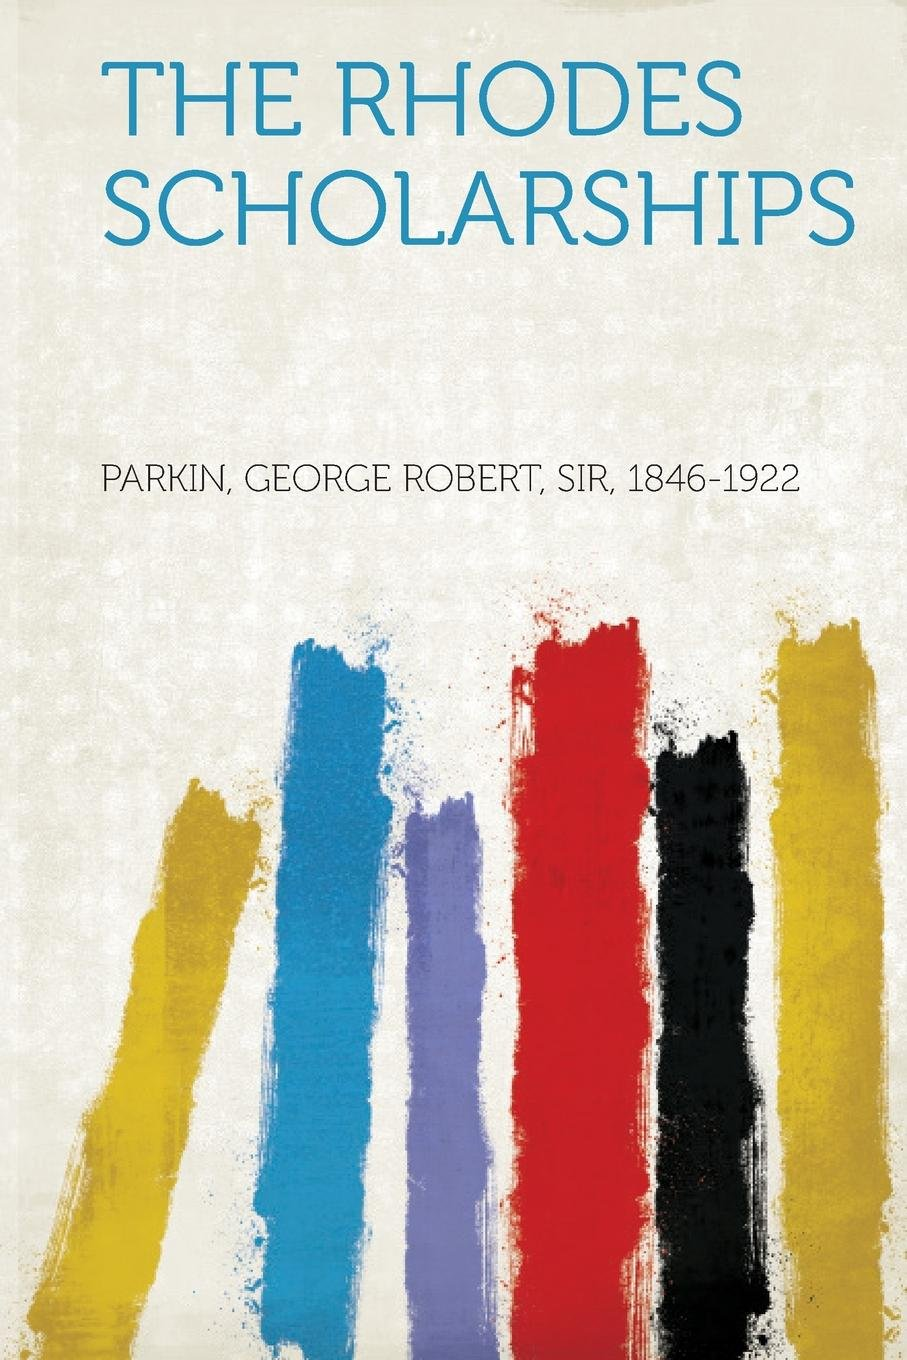 Book by George Robert Parkin - The Rhodes Scholarships Pdf